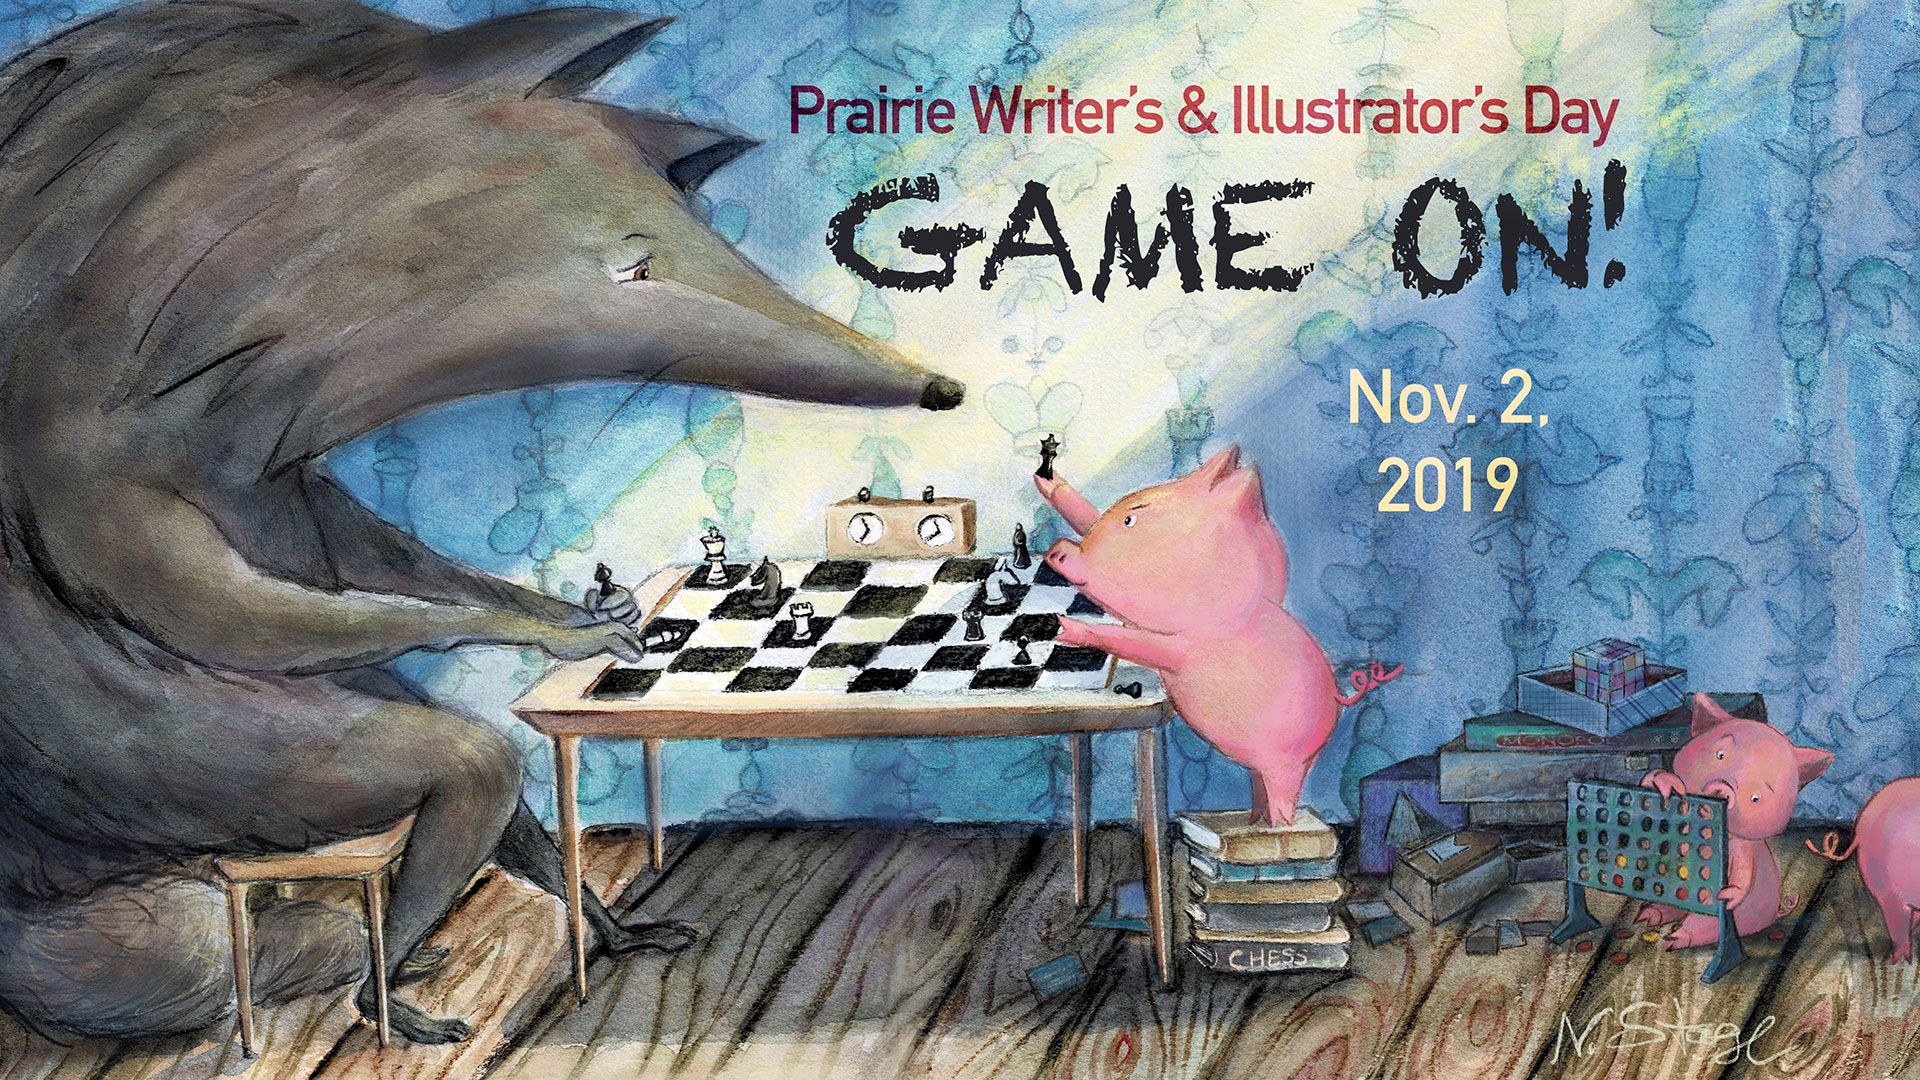 Game On!: Up Your Writing & Illustrating Game Saturday, November 2nd 2019 9:00am-6:00pm Wojcik Conference Center Harper College 1200 W. Algonquin Rd Palatine IL 60067 Registration begins Saturday, September 7th image by Niki Stage Click for more information